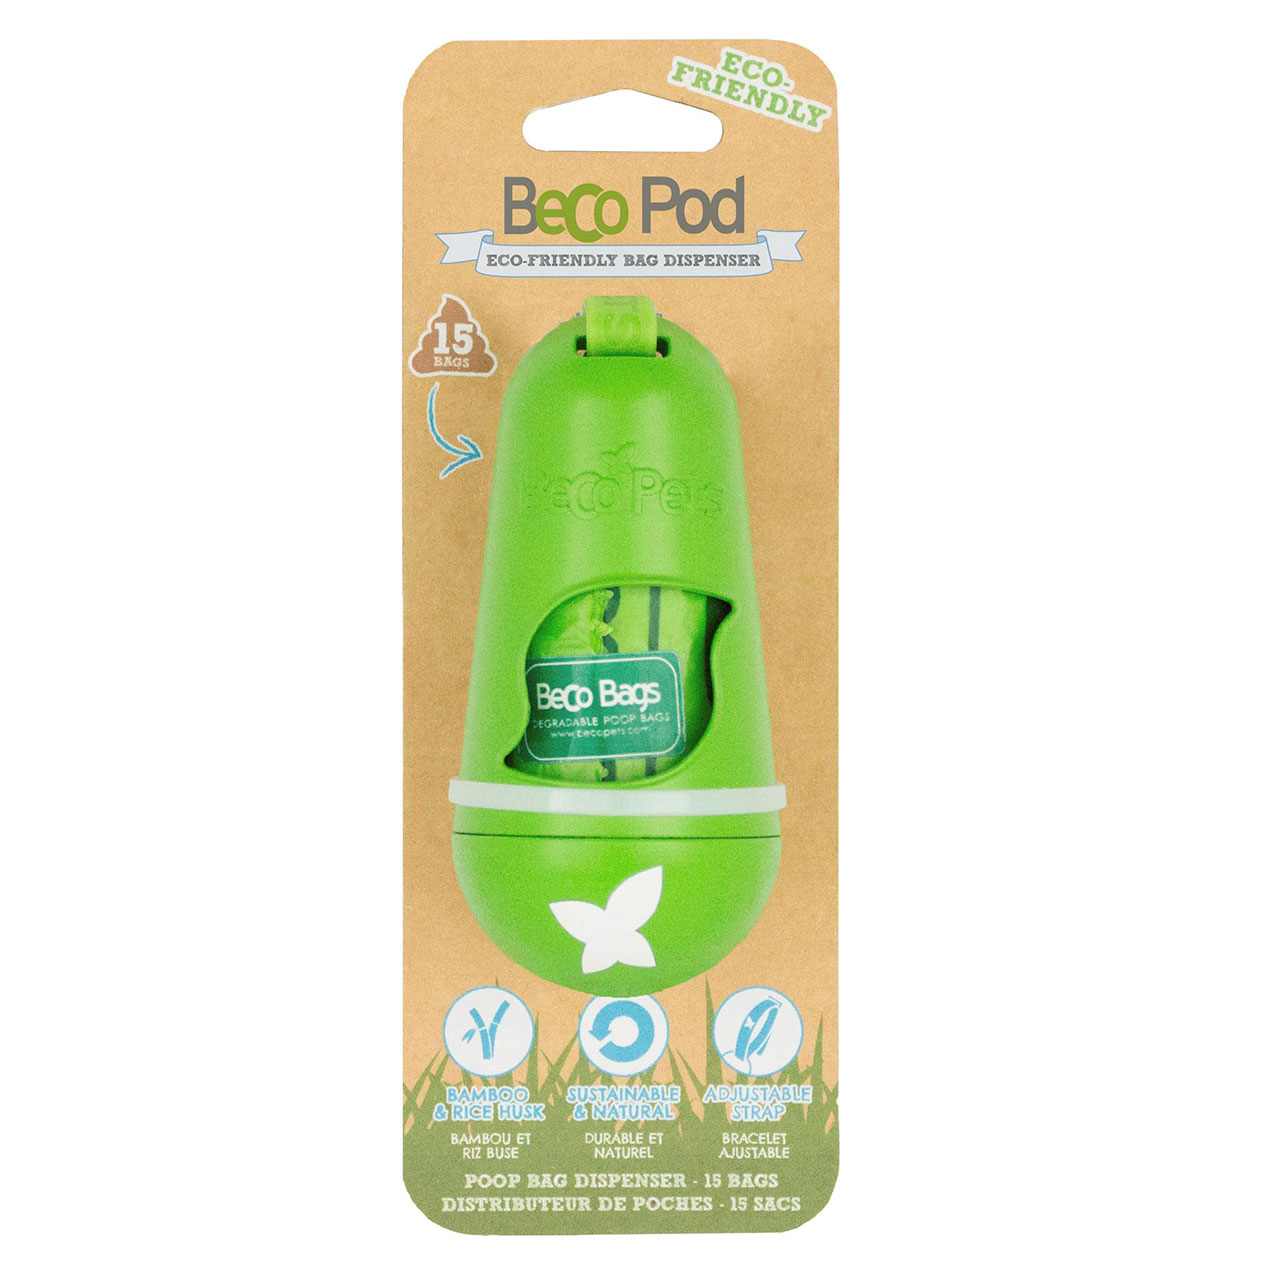 Beco POD Dispenser